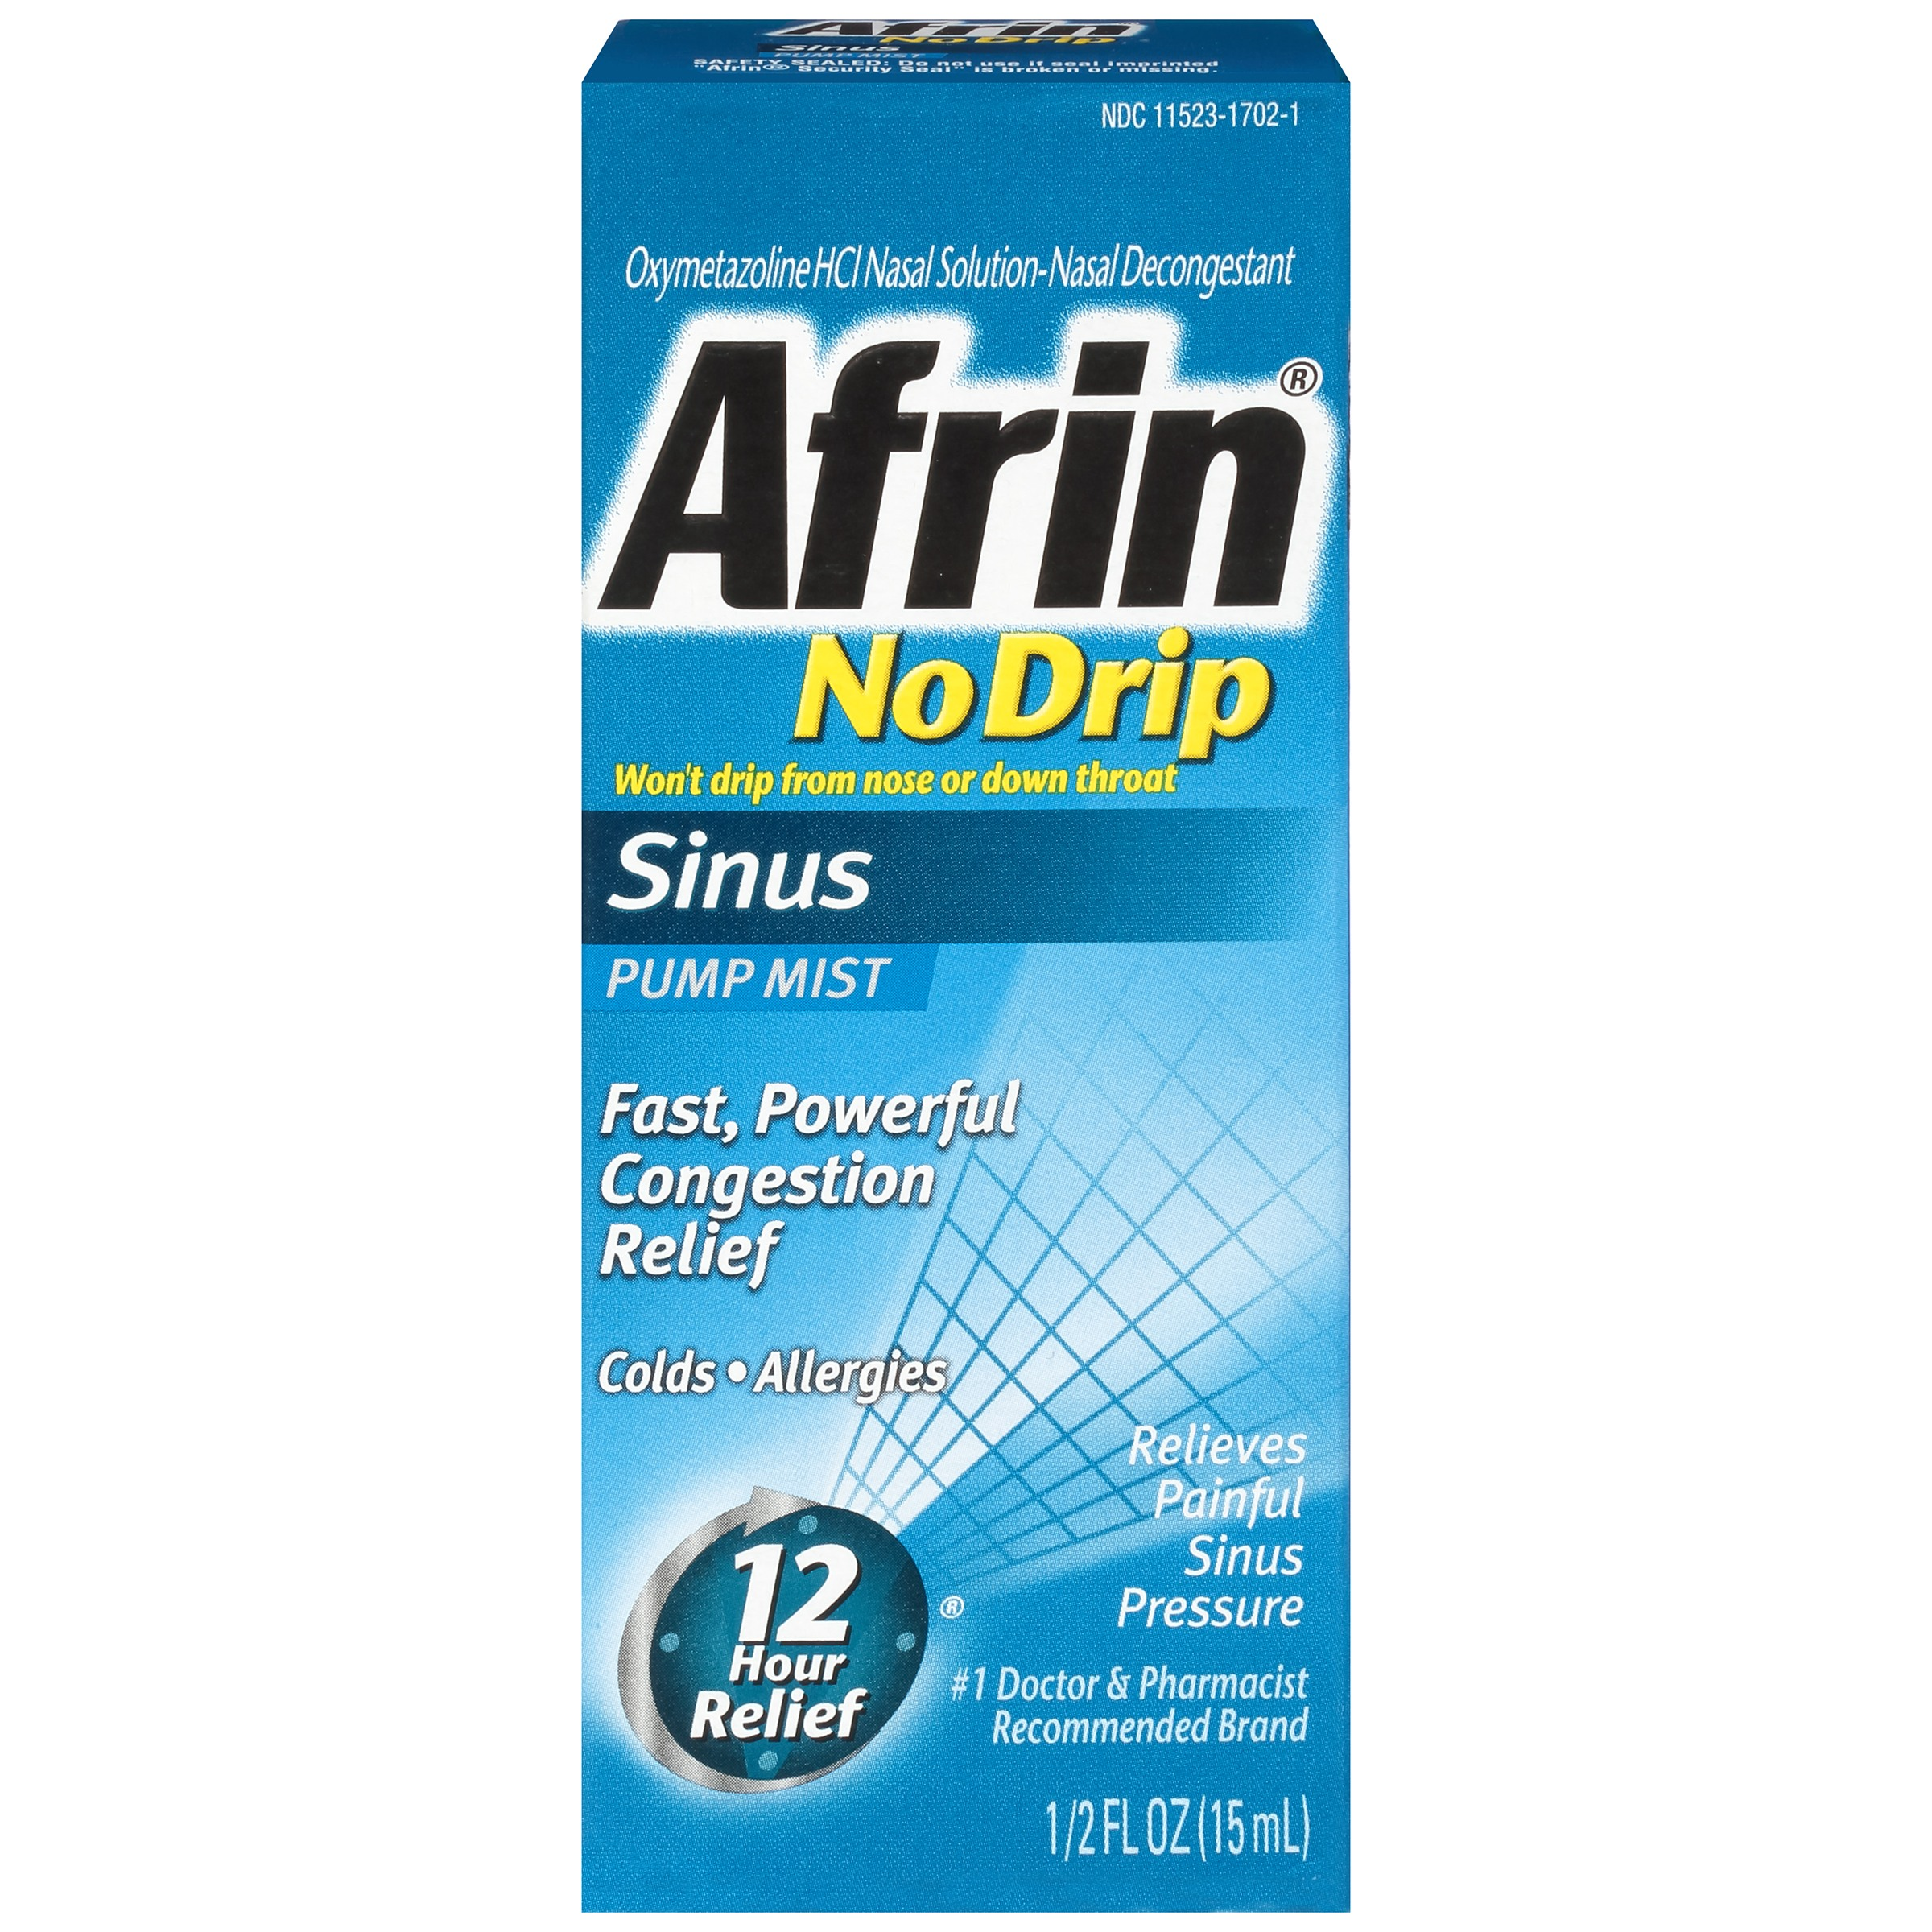 Image of Afrin ® No Drip Allergy Sinus Pump Mist Nasal Decongestant 0.5 fl. oz. Box